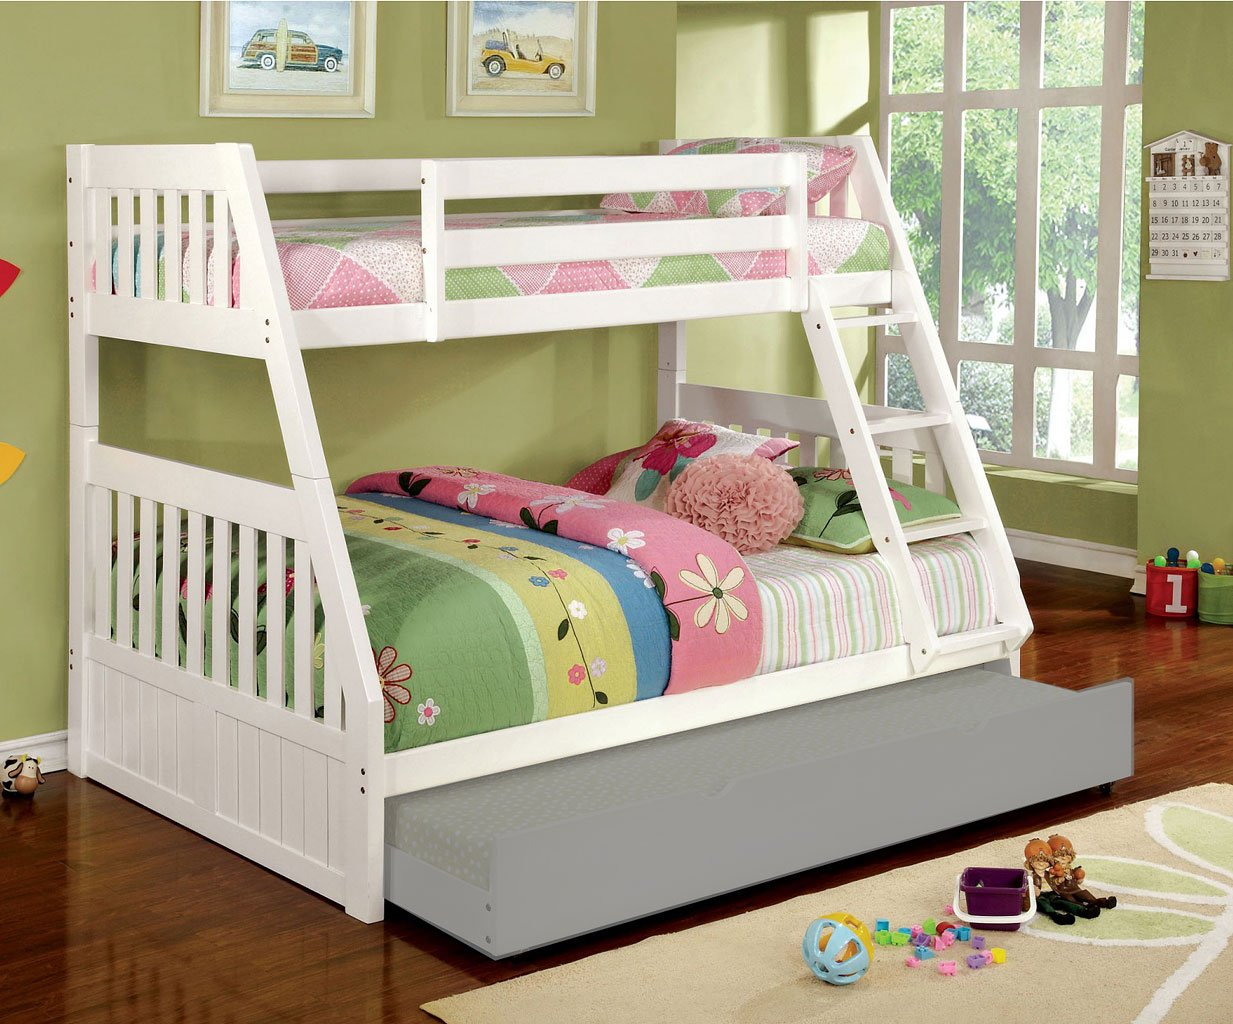 Furniture Stores Canberra Canberra Twin Full Bunk Bed White